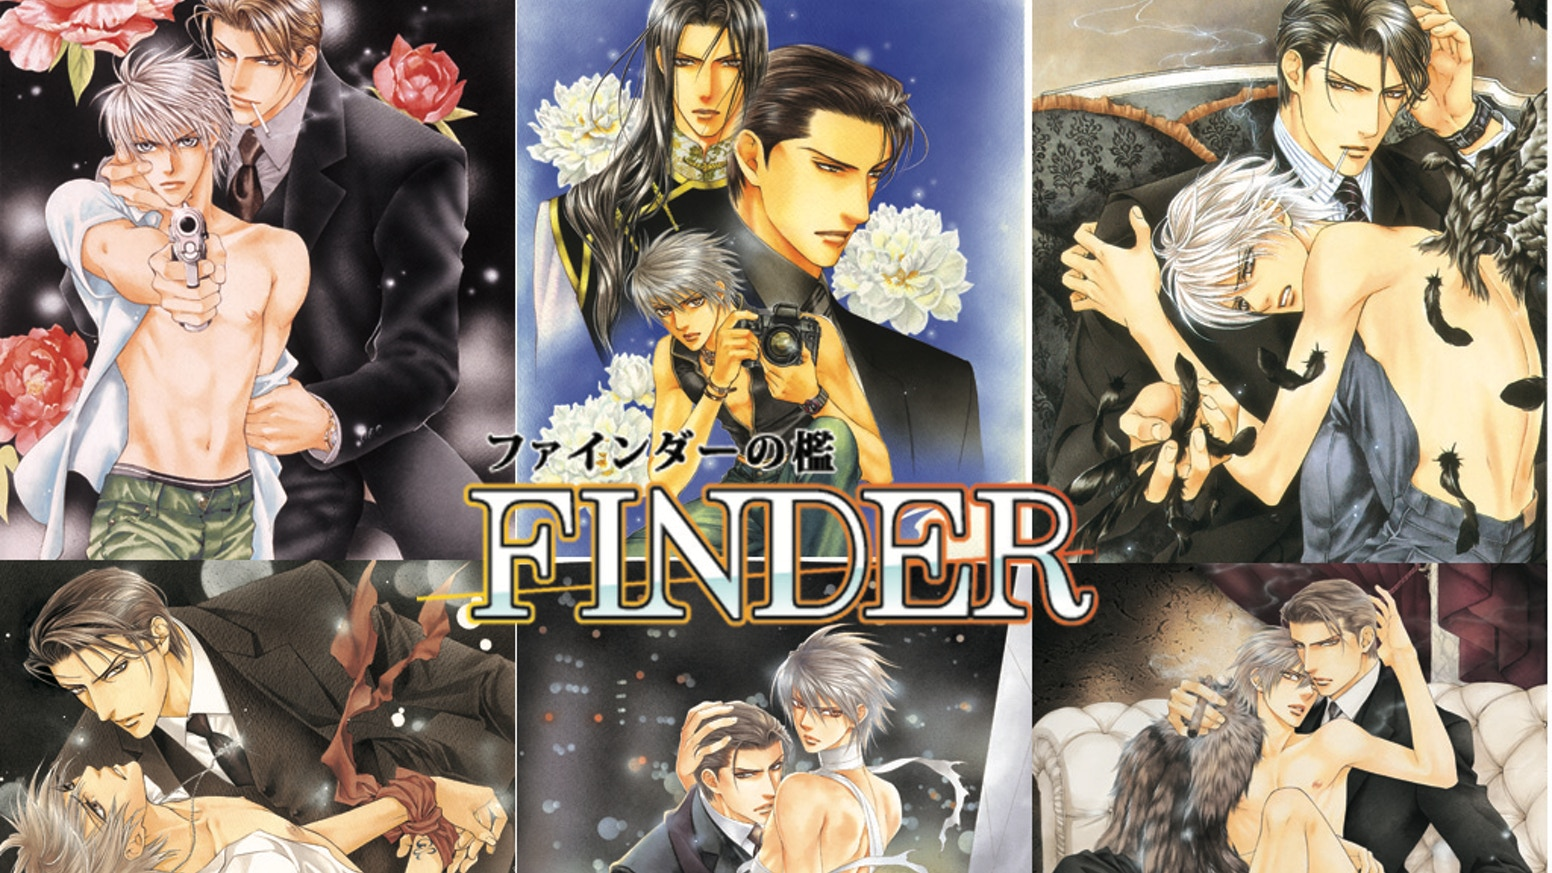 Restocking the complete series of Finder Vol. 1 - 6 by Ayano Yamane; undeniably one of the best yaoi manga series in BL existence!